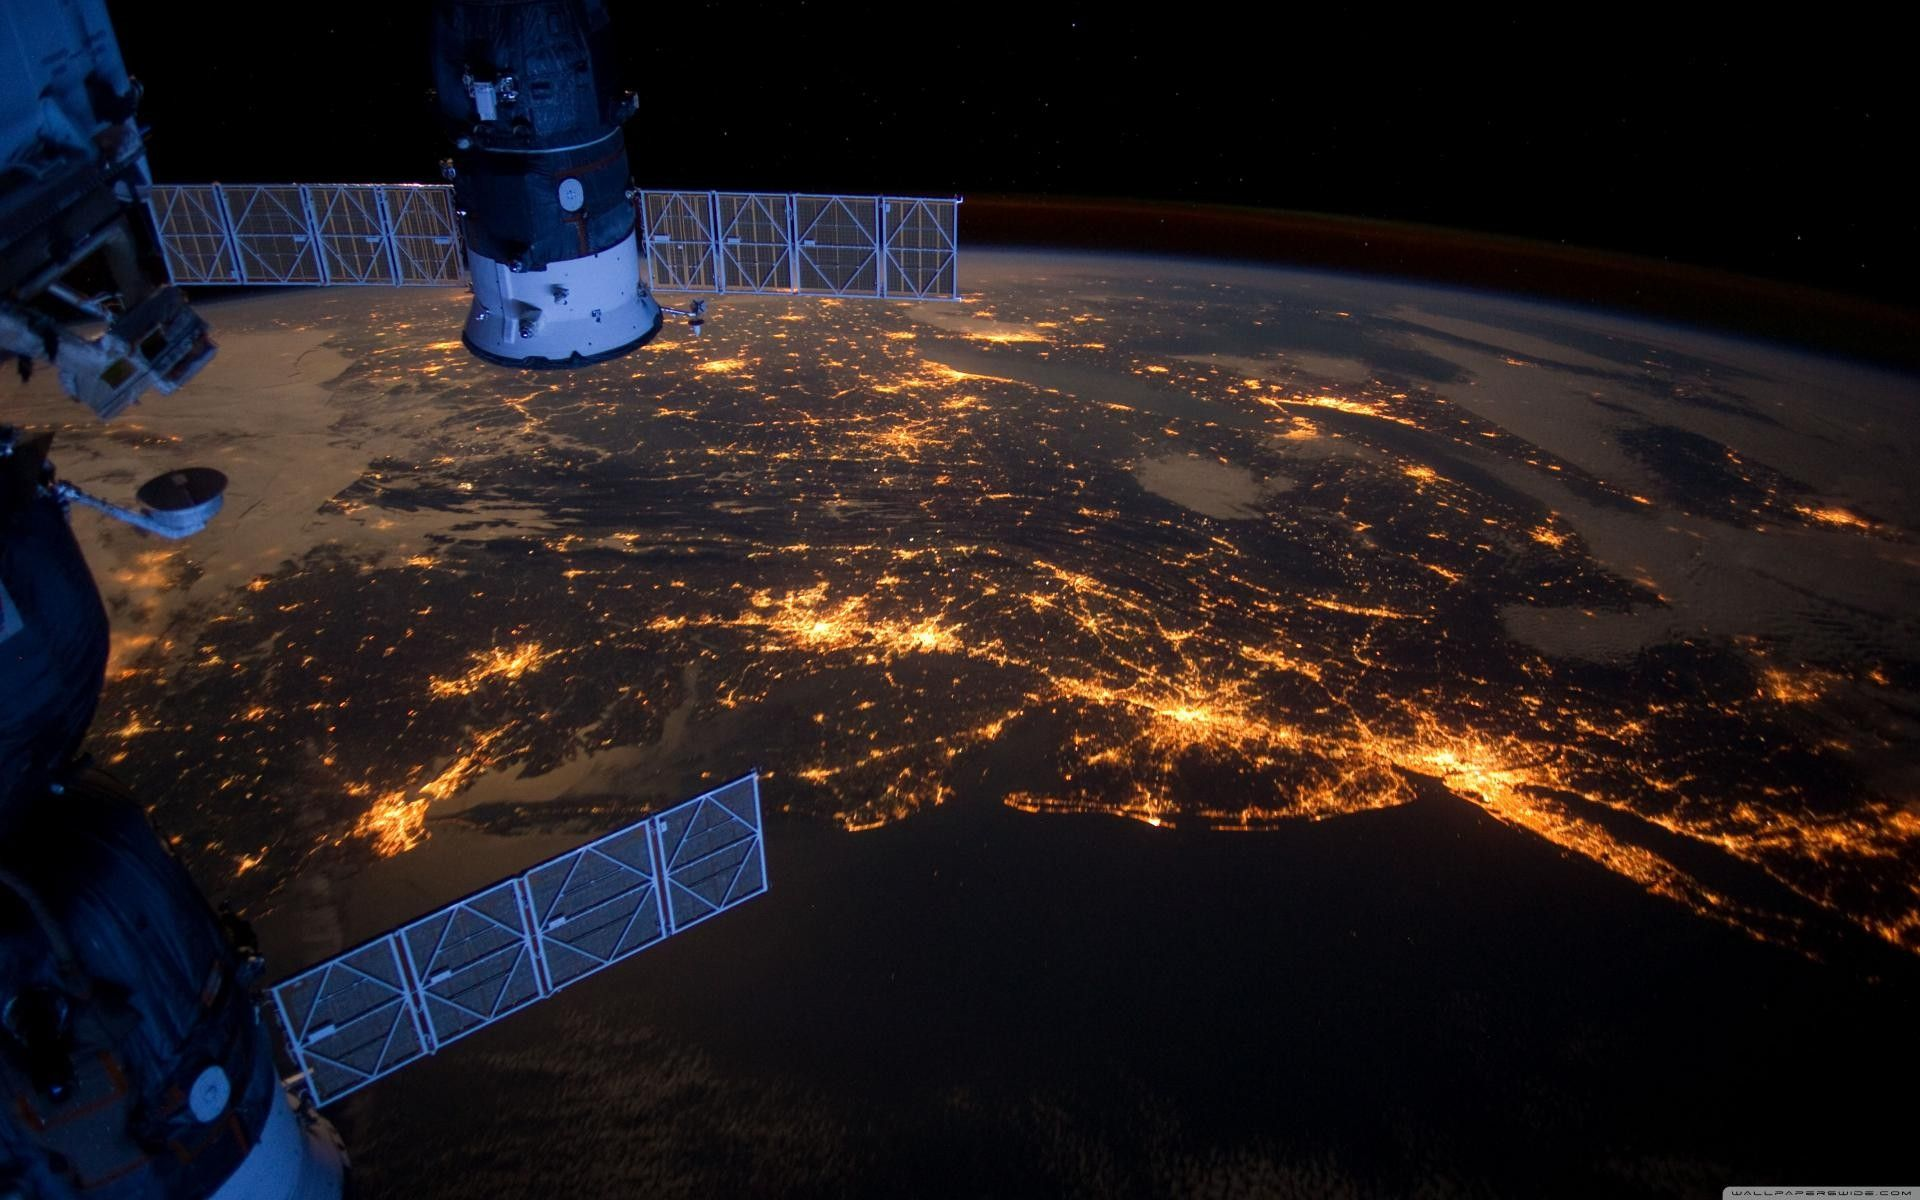 Fondos De Pantalla Espaciales 15 Earth From Space Space Station International Space Station